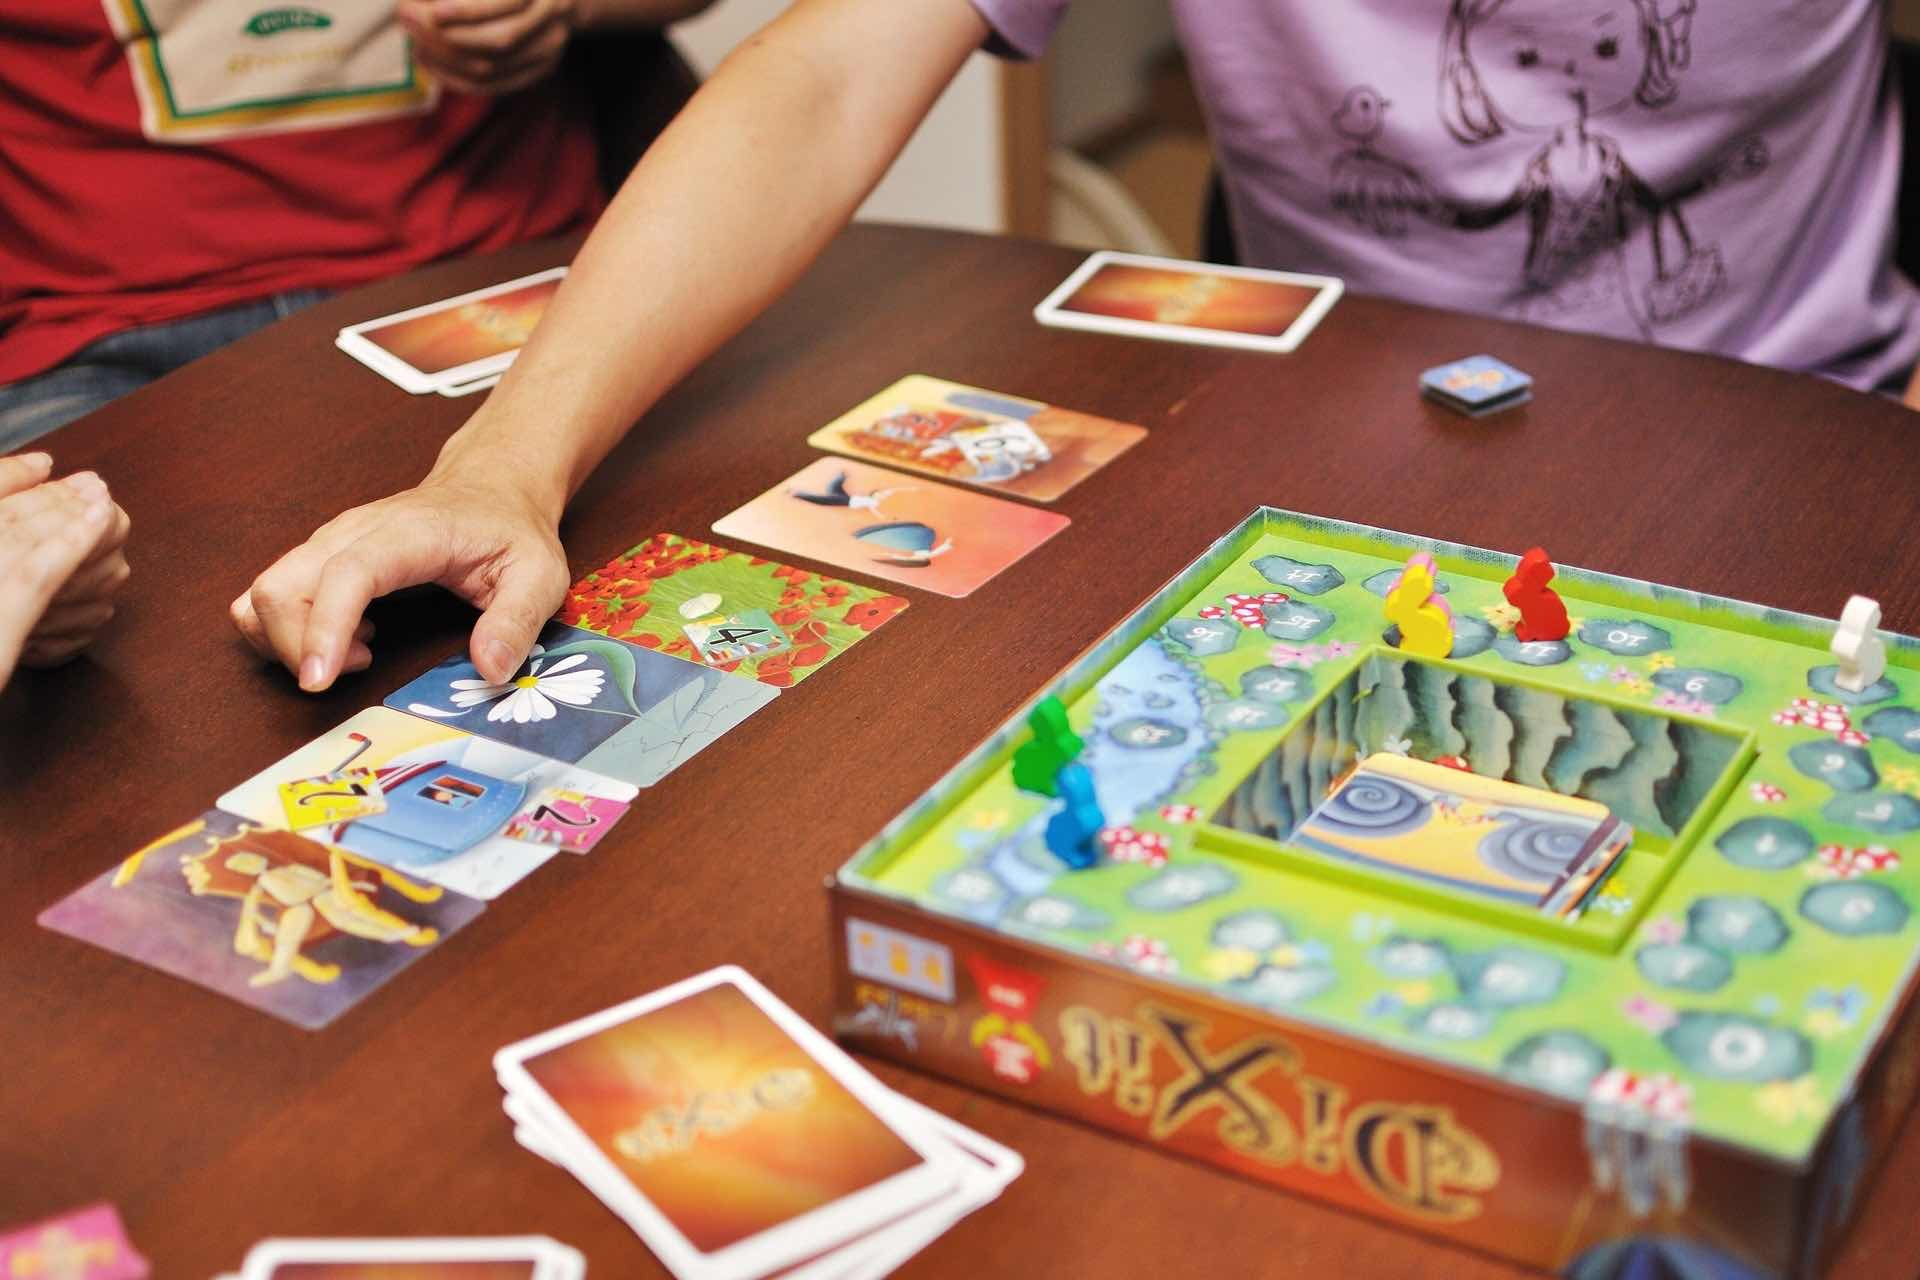 dixit-storytelling-card-game-gameplay